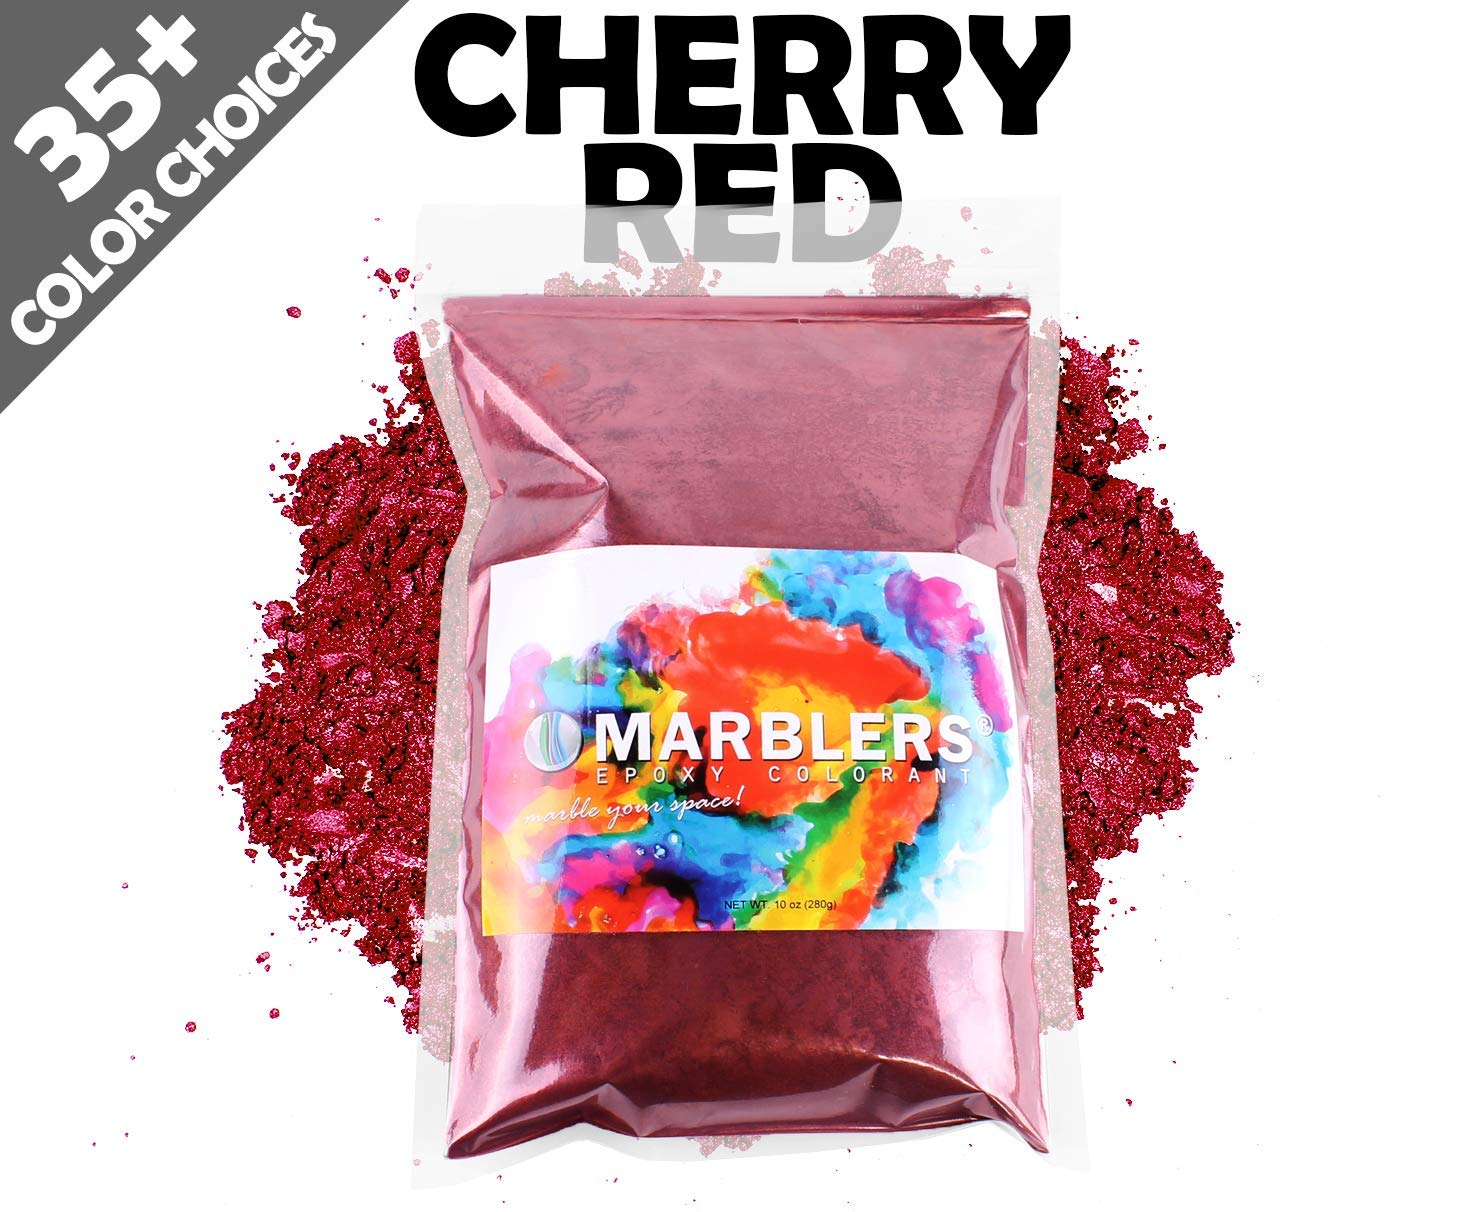 Marblers Powder Colorant 10oz (283g) [Cherry Red] | Pearlescent Pigment | Tint | Pure Mica Powder for Resin | Dye | Non-Toxic | Great for Paint, Concrete, Epoxy, Soap, Nail Polish, Cosmetics